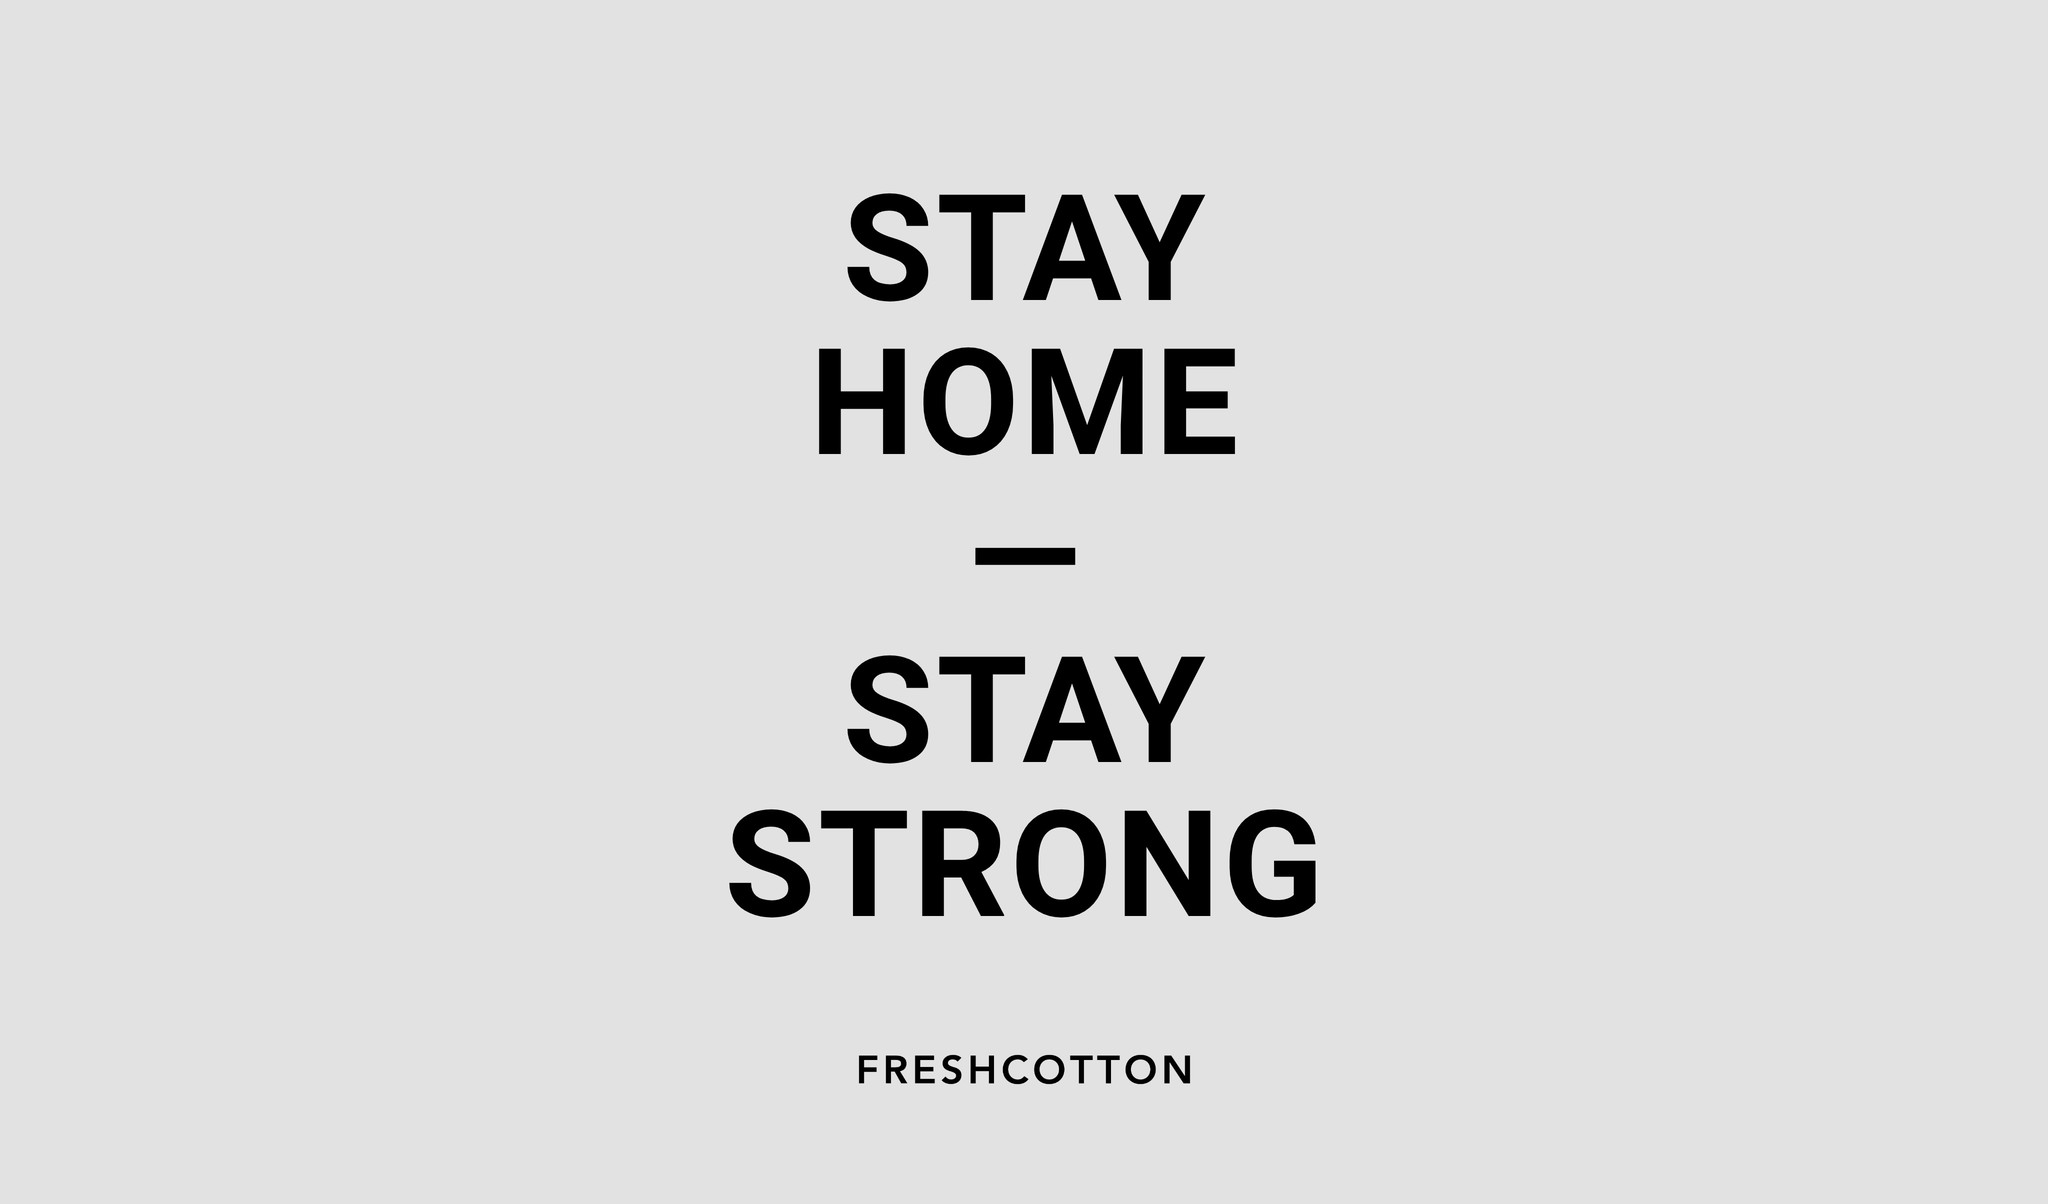 STAY HOME, STAY STRONG